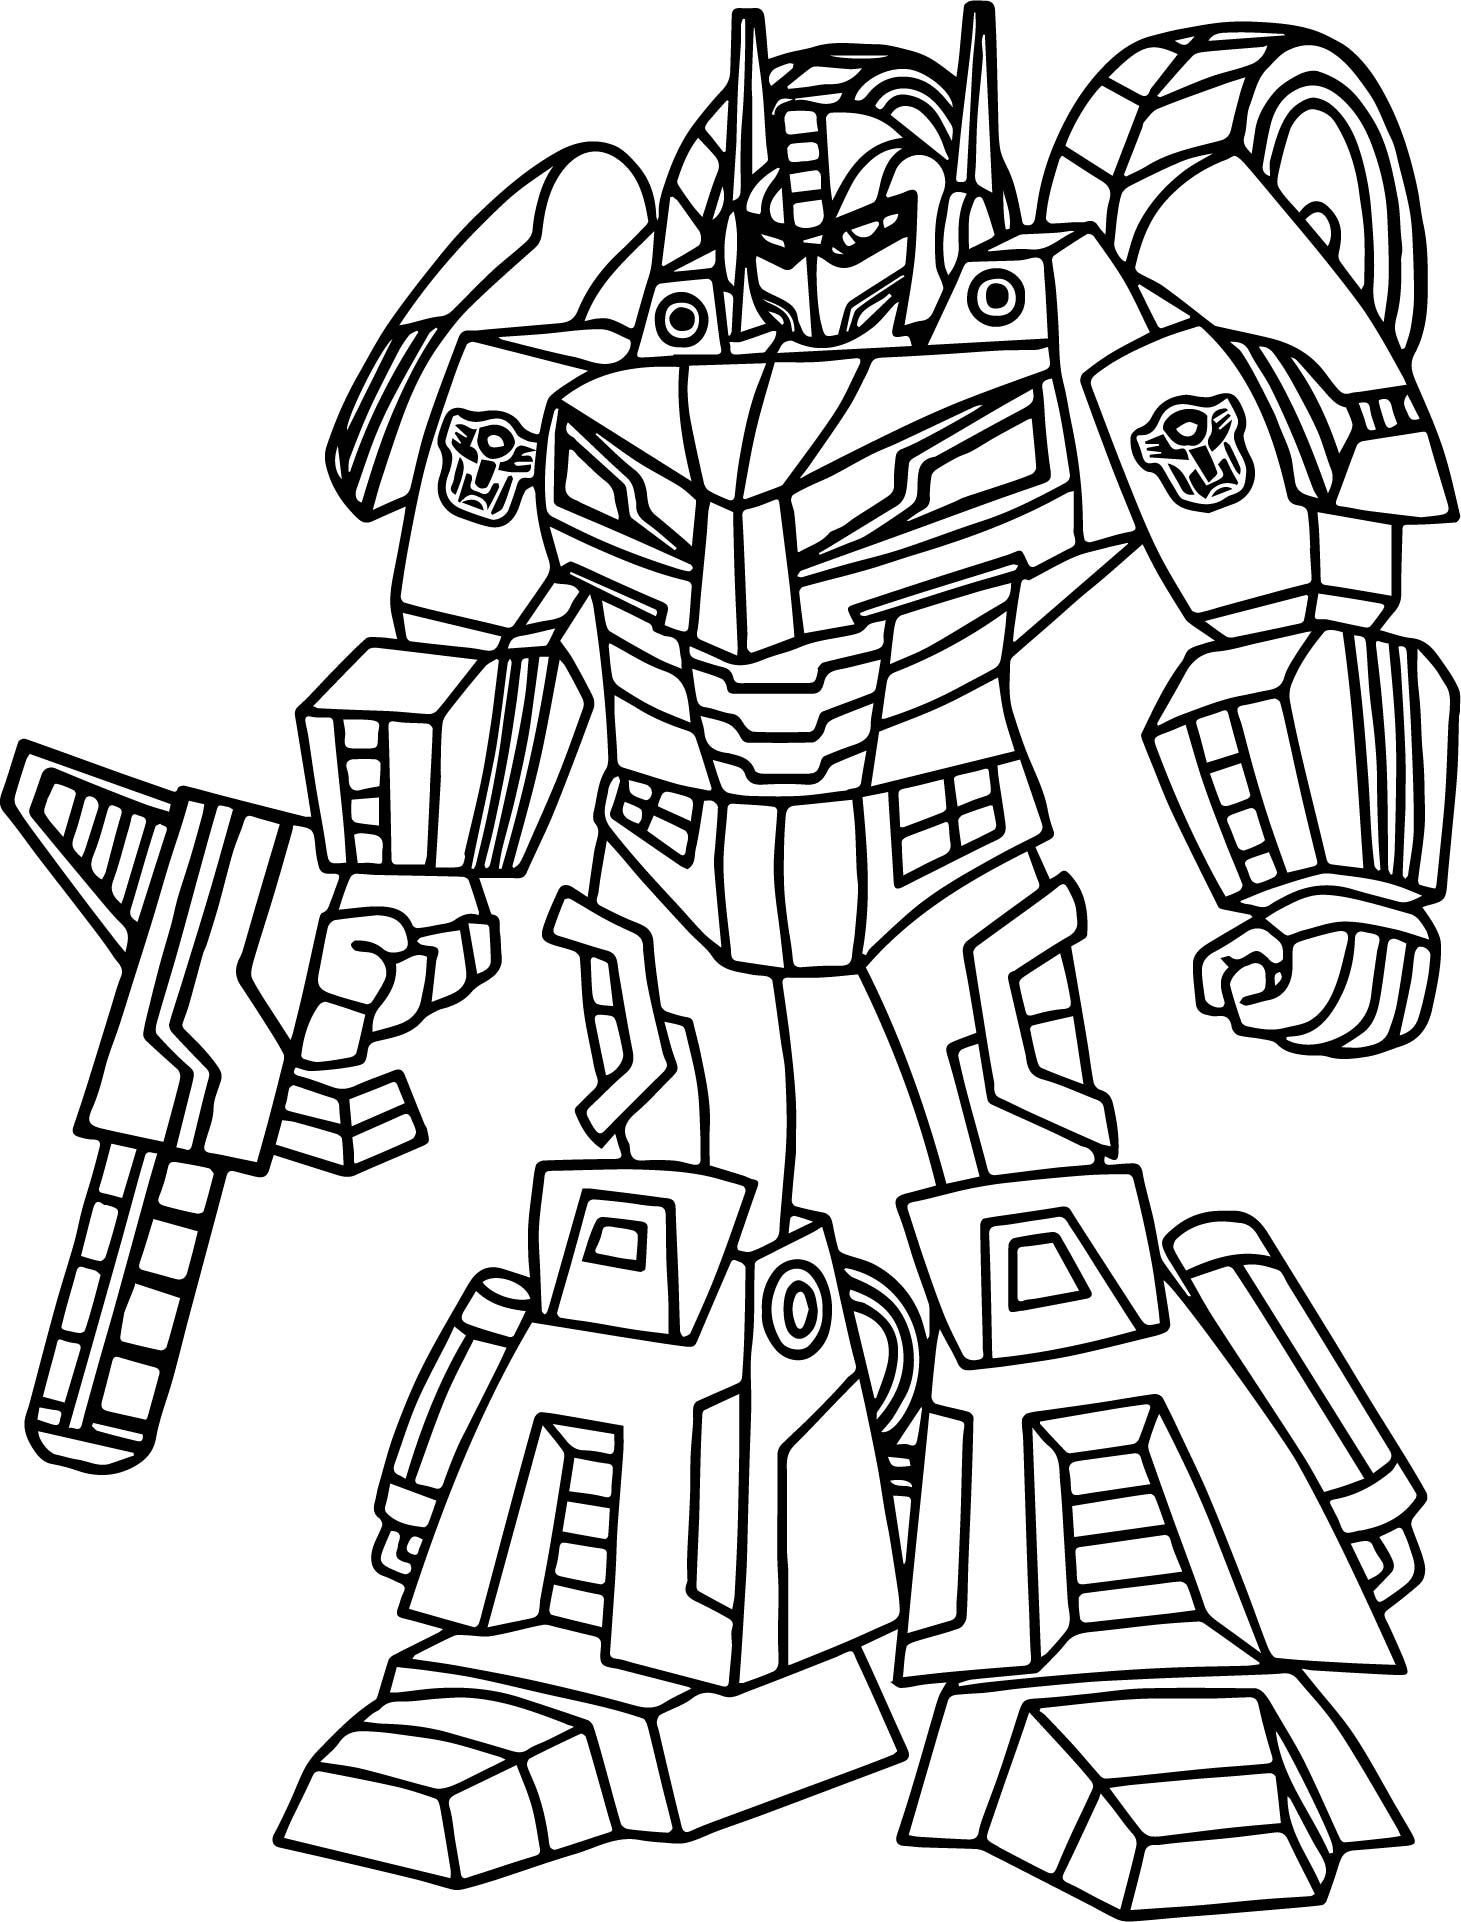 Outline Transformers Coloring Page Wecoloringpage